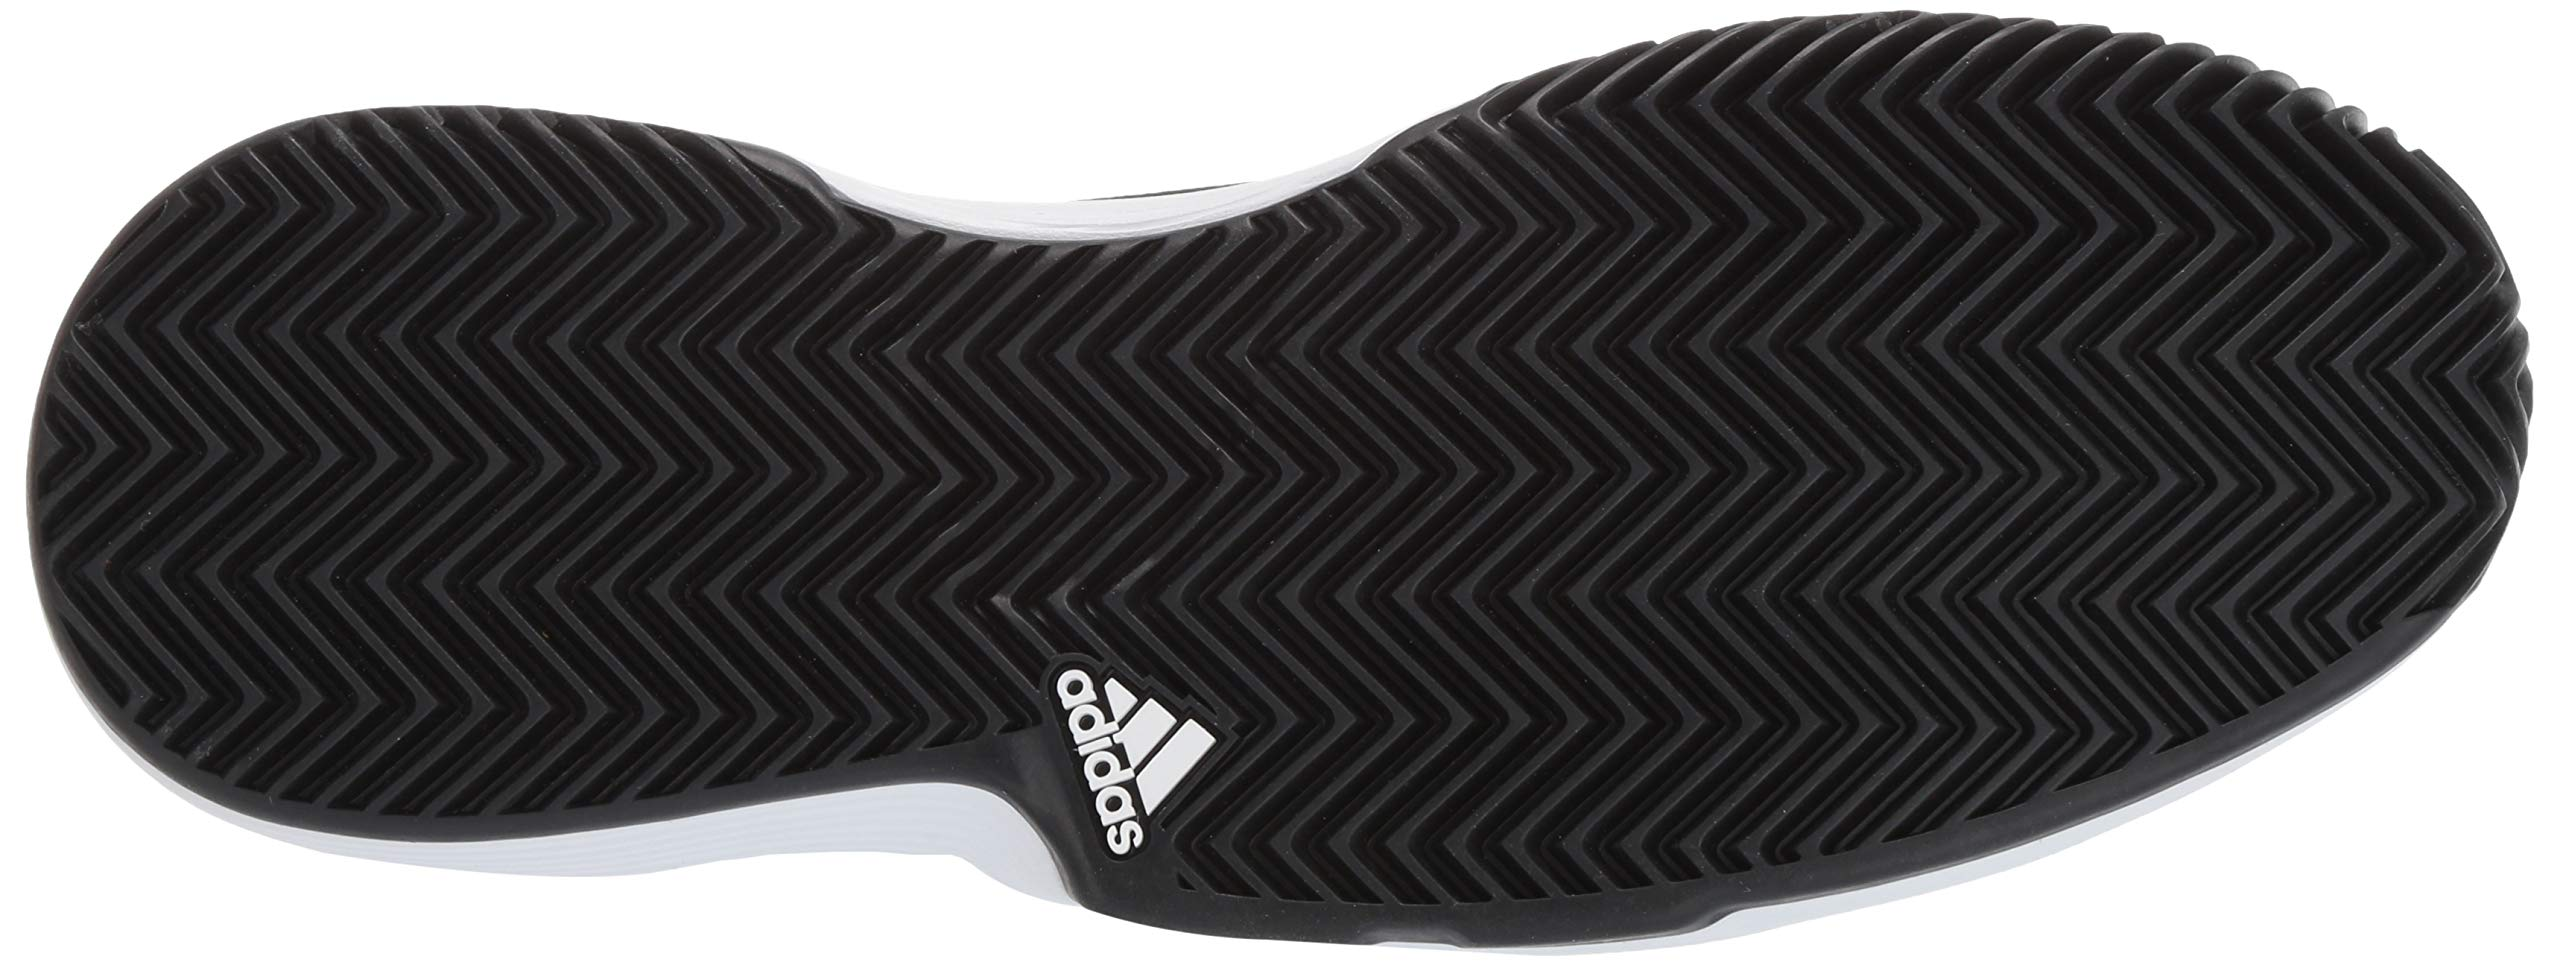 adidas Men's Gamecourt, Black/White/Shock red, 6.5 M US by adidas (Image #3)